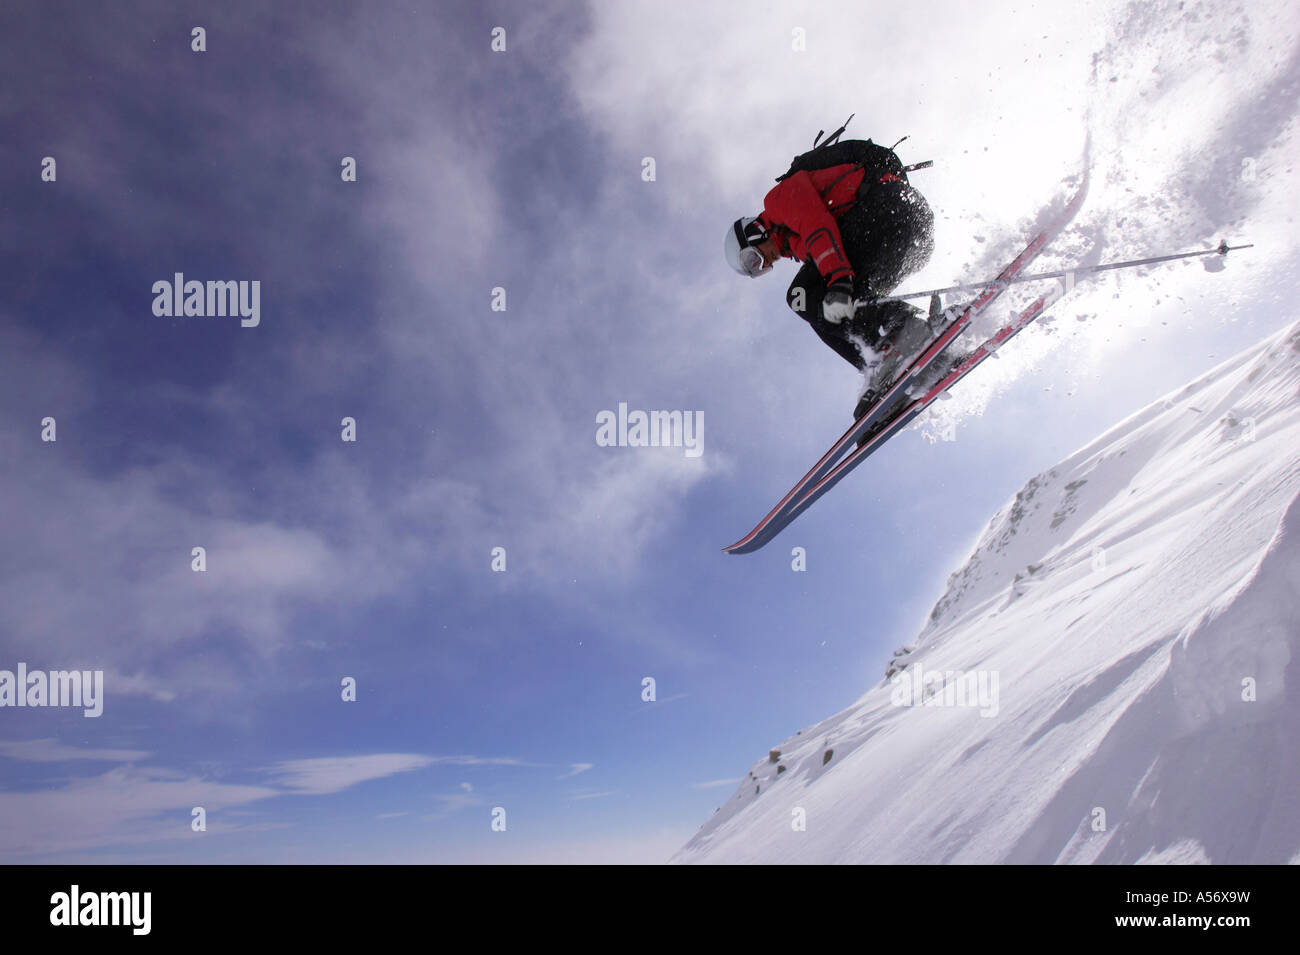 Italy, Gressoney, person jumping ski, low angle view - Stock Image